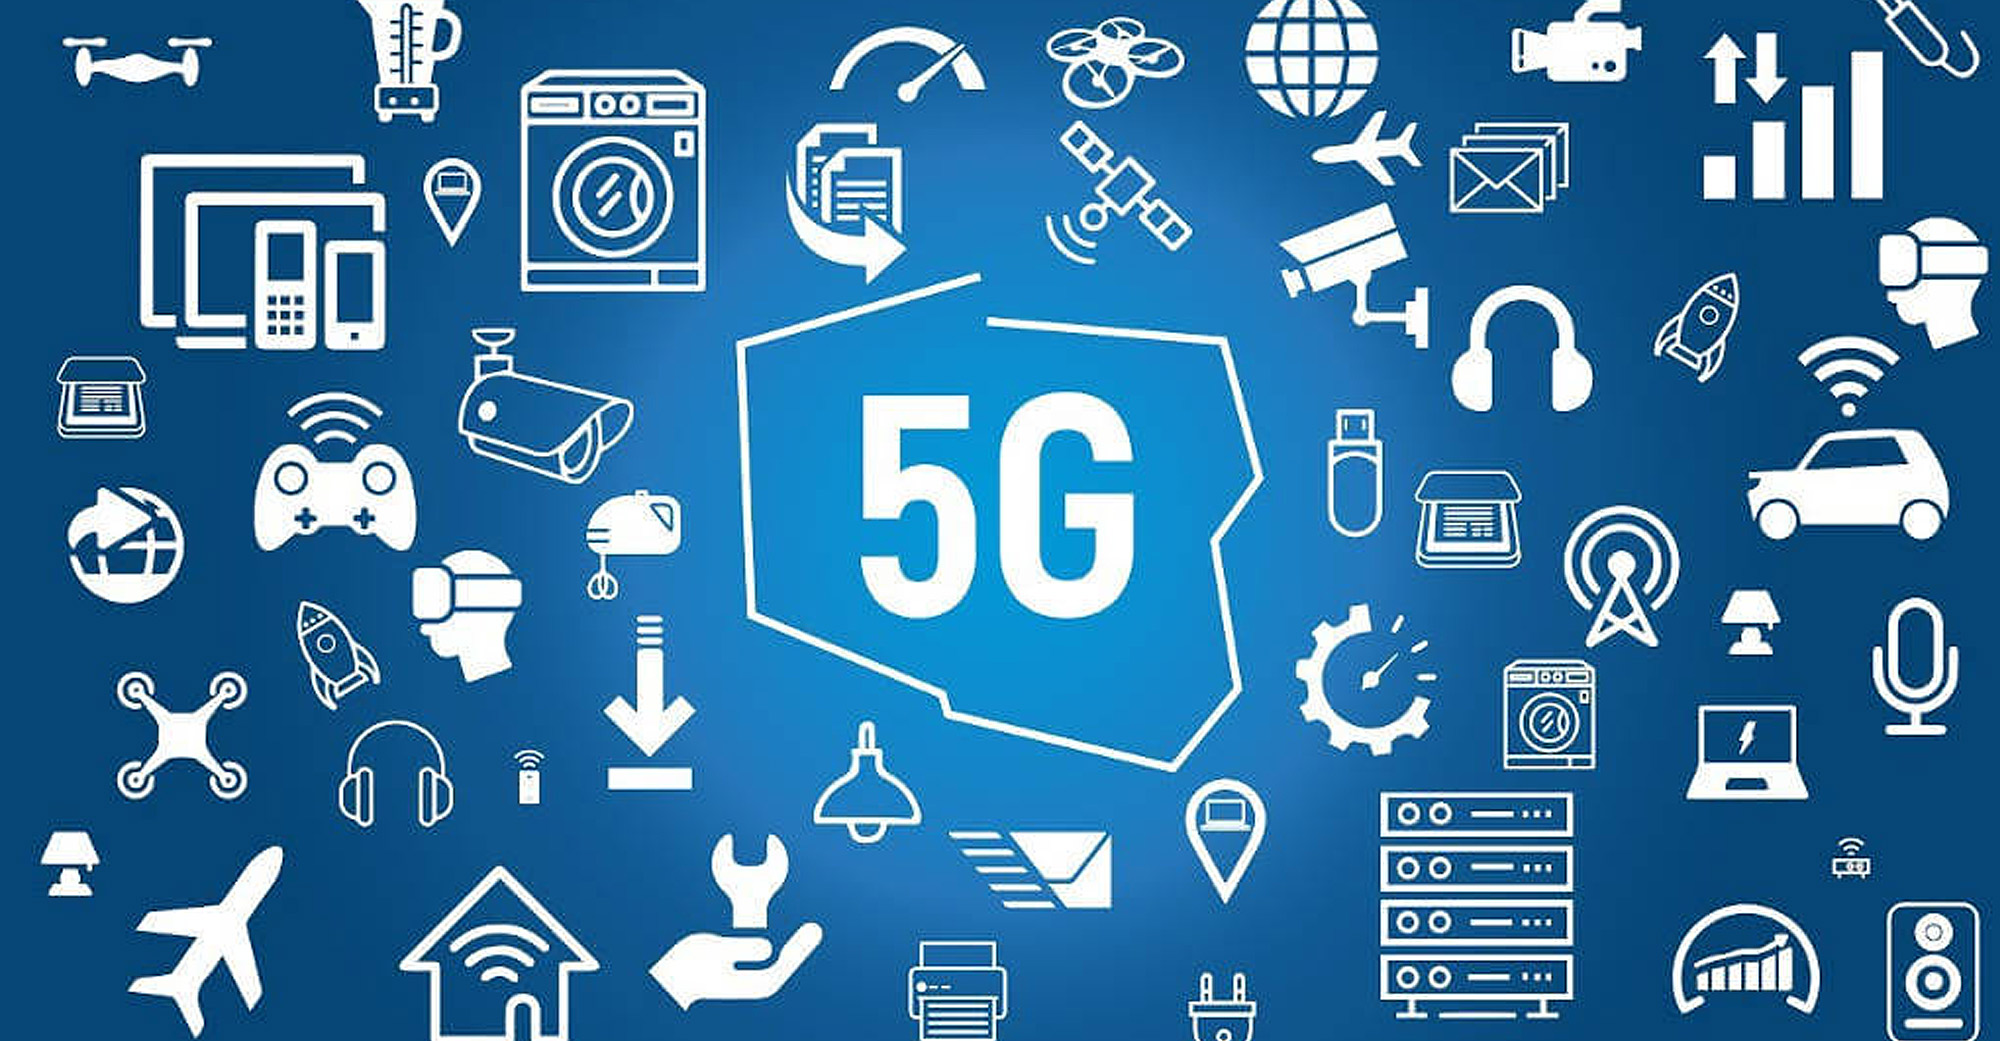 images-5G-connectivity